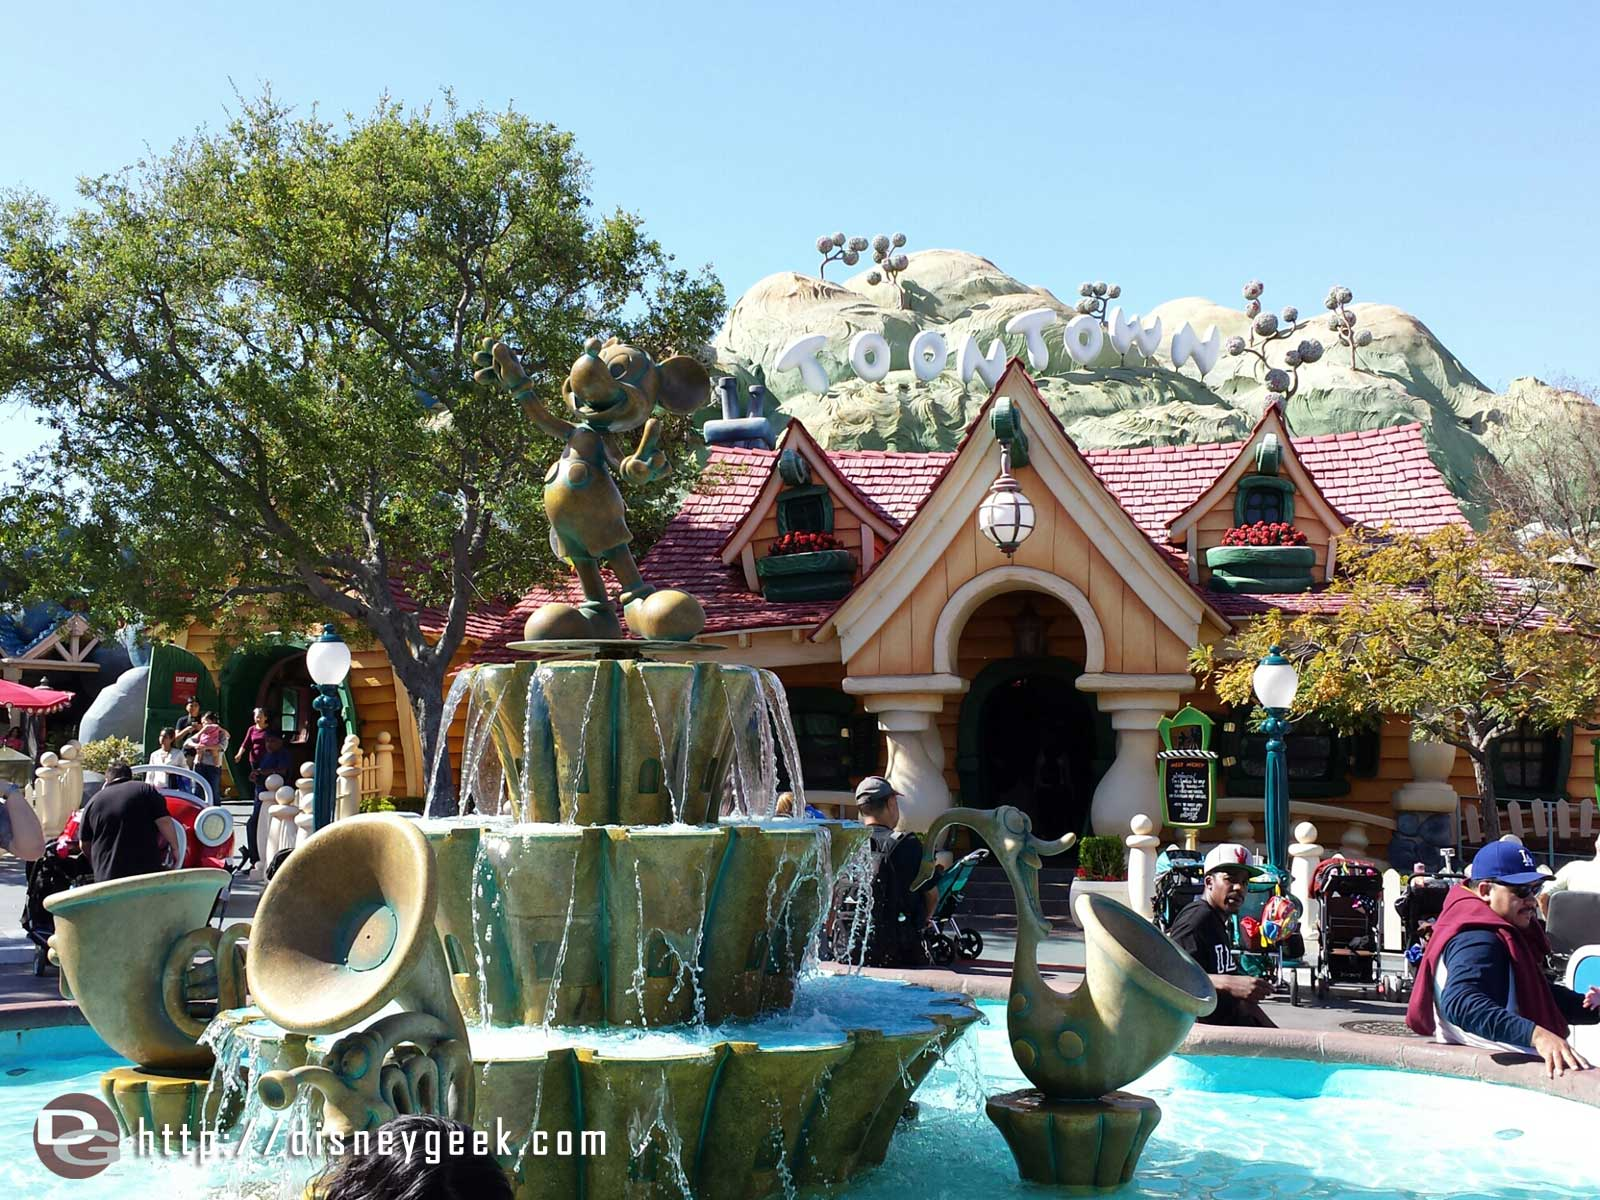 Mickey's fountain & house in Toontown #Disneyland